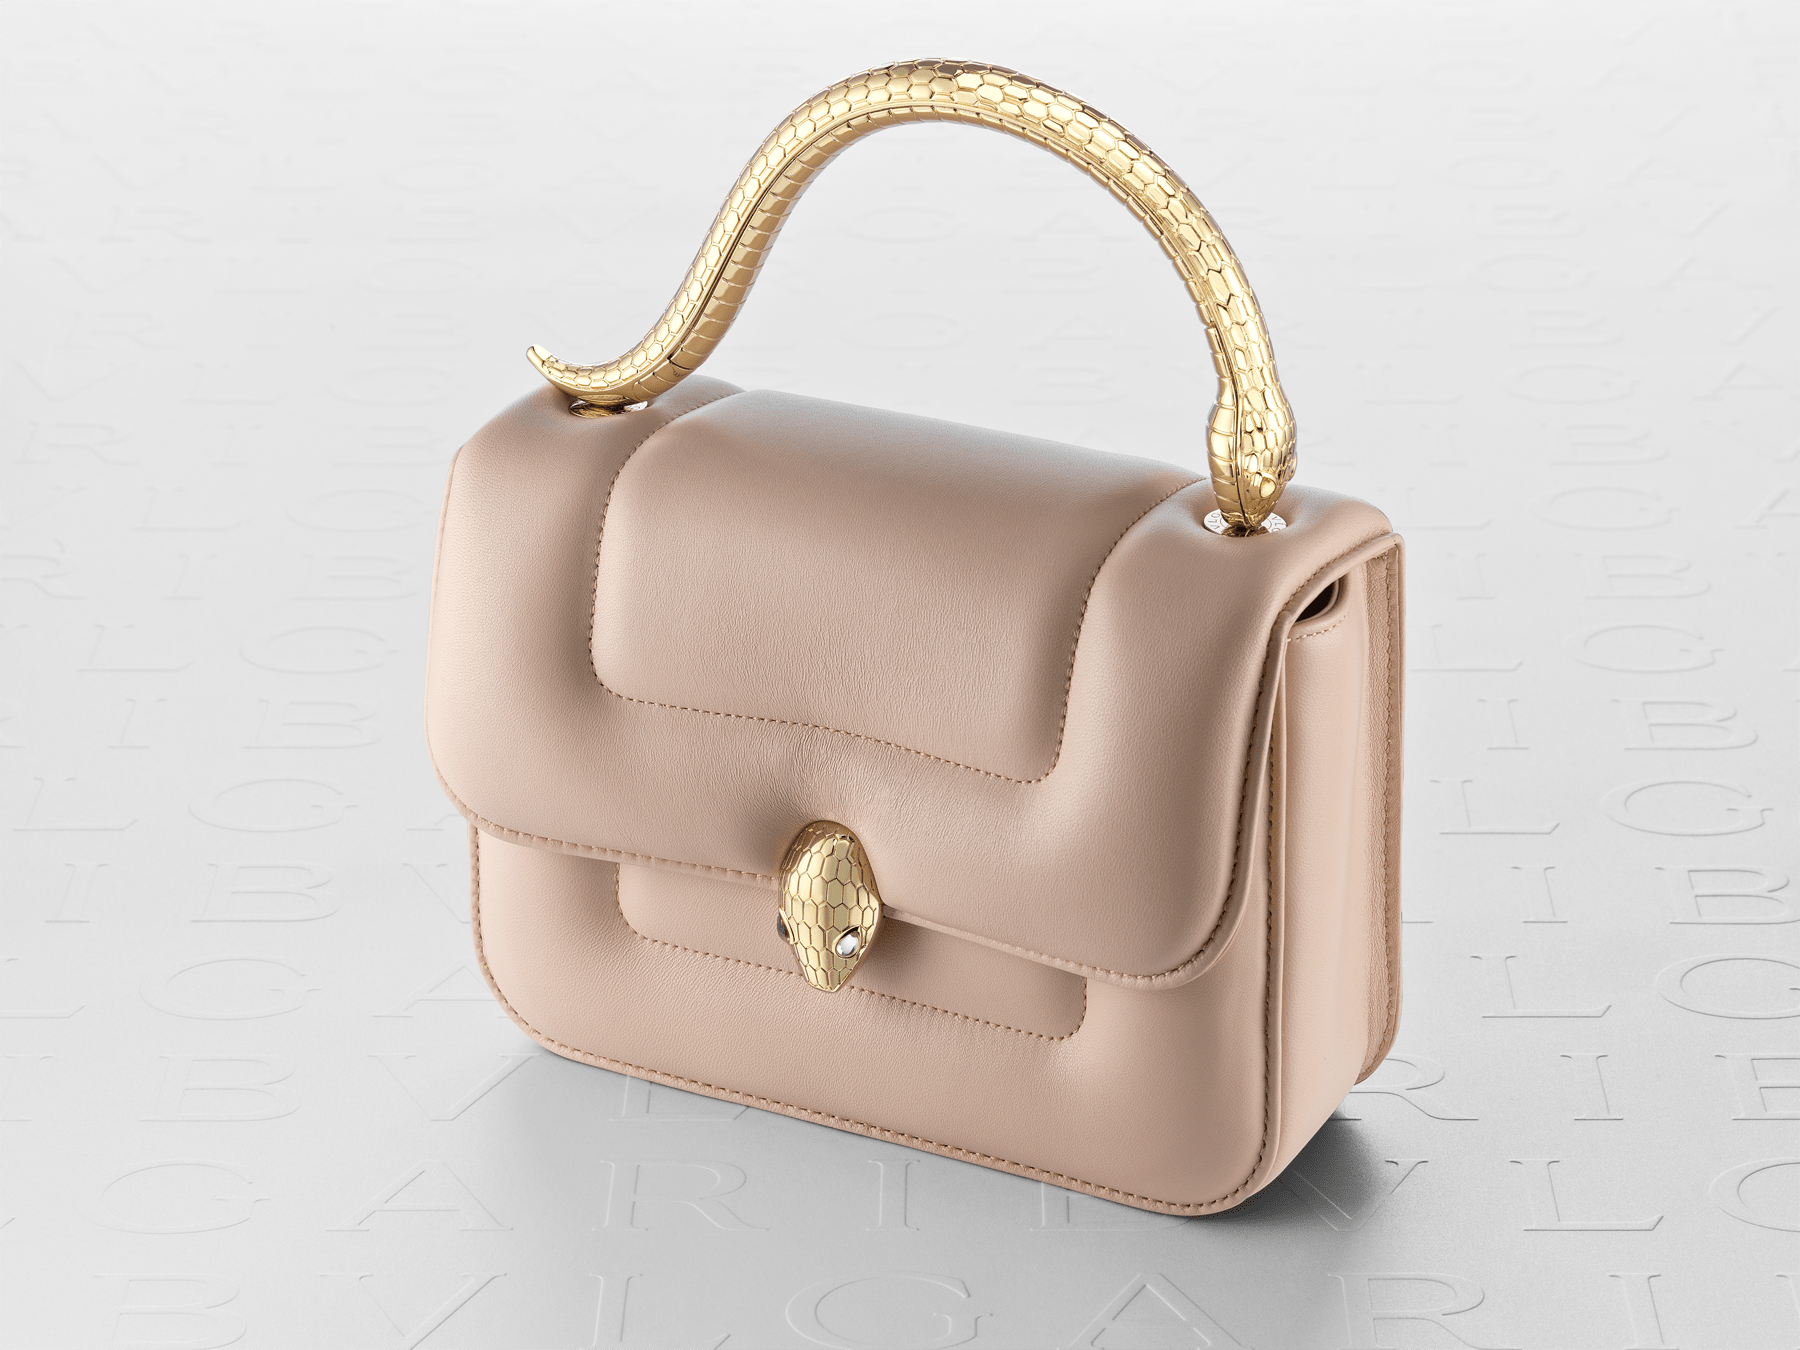 """""""Mary Katrantzou x Bvlgari"""" top handle bag in soft matelassé Aegean Topaz blue nappa leather, with Aegean Topaz blue nappa leather inner lining. New Serpenti head closure in gold-plated brass, finished with seductive crystal eyes. Special Edition. MK-1142 image 7"""